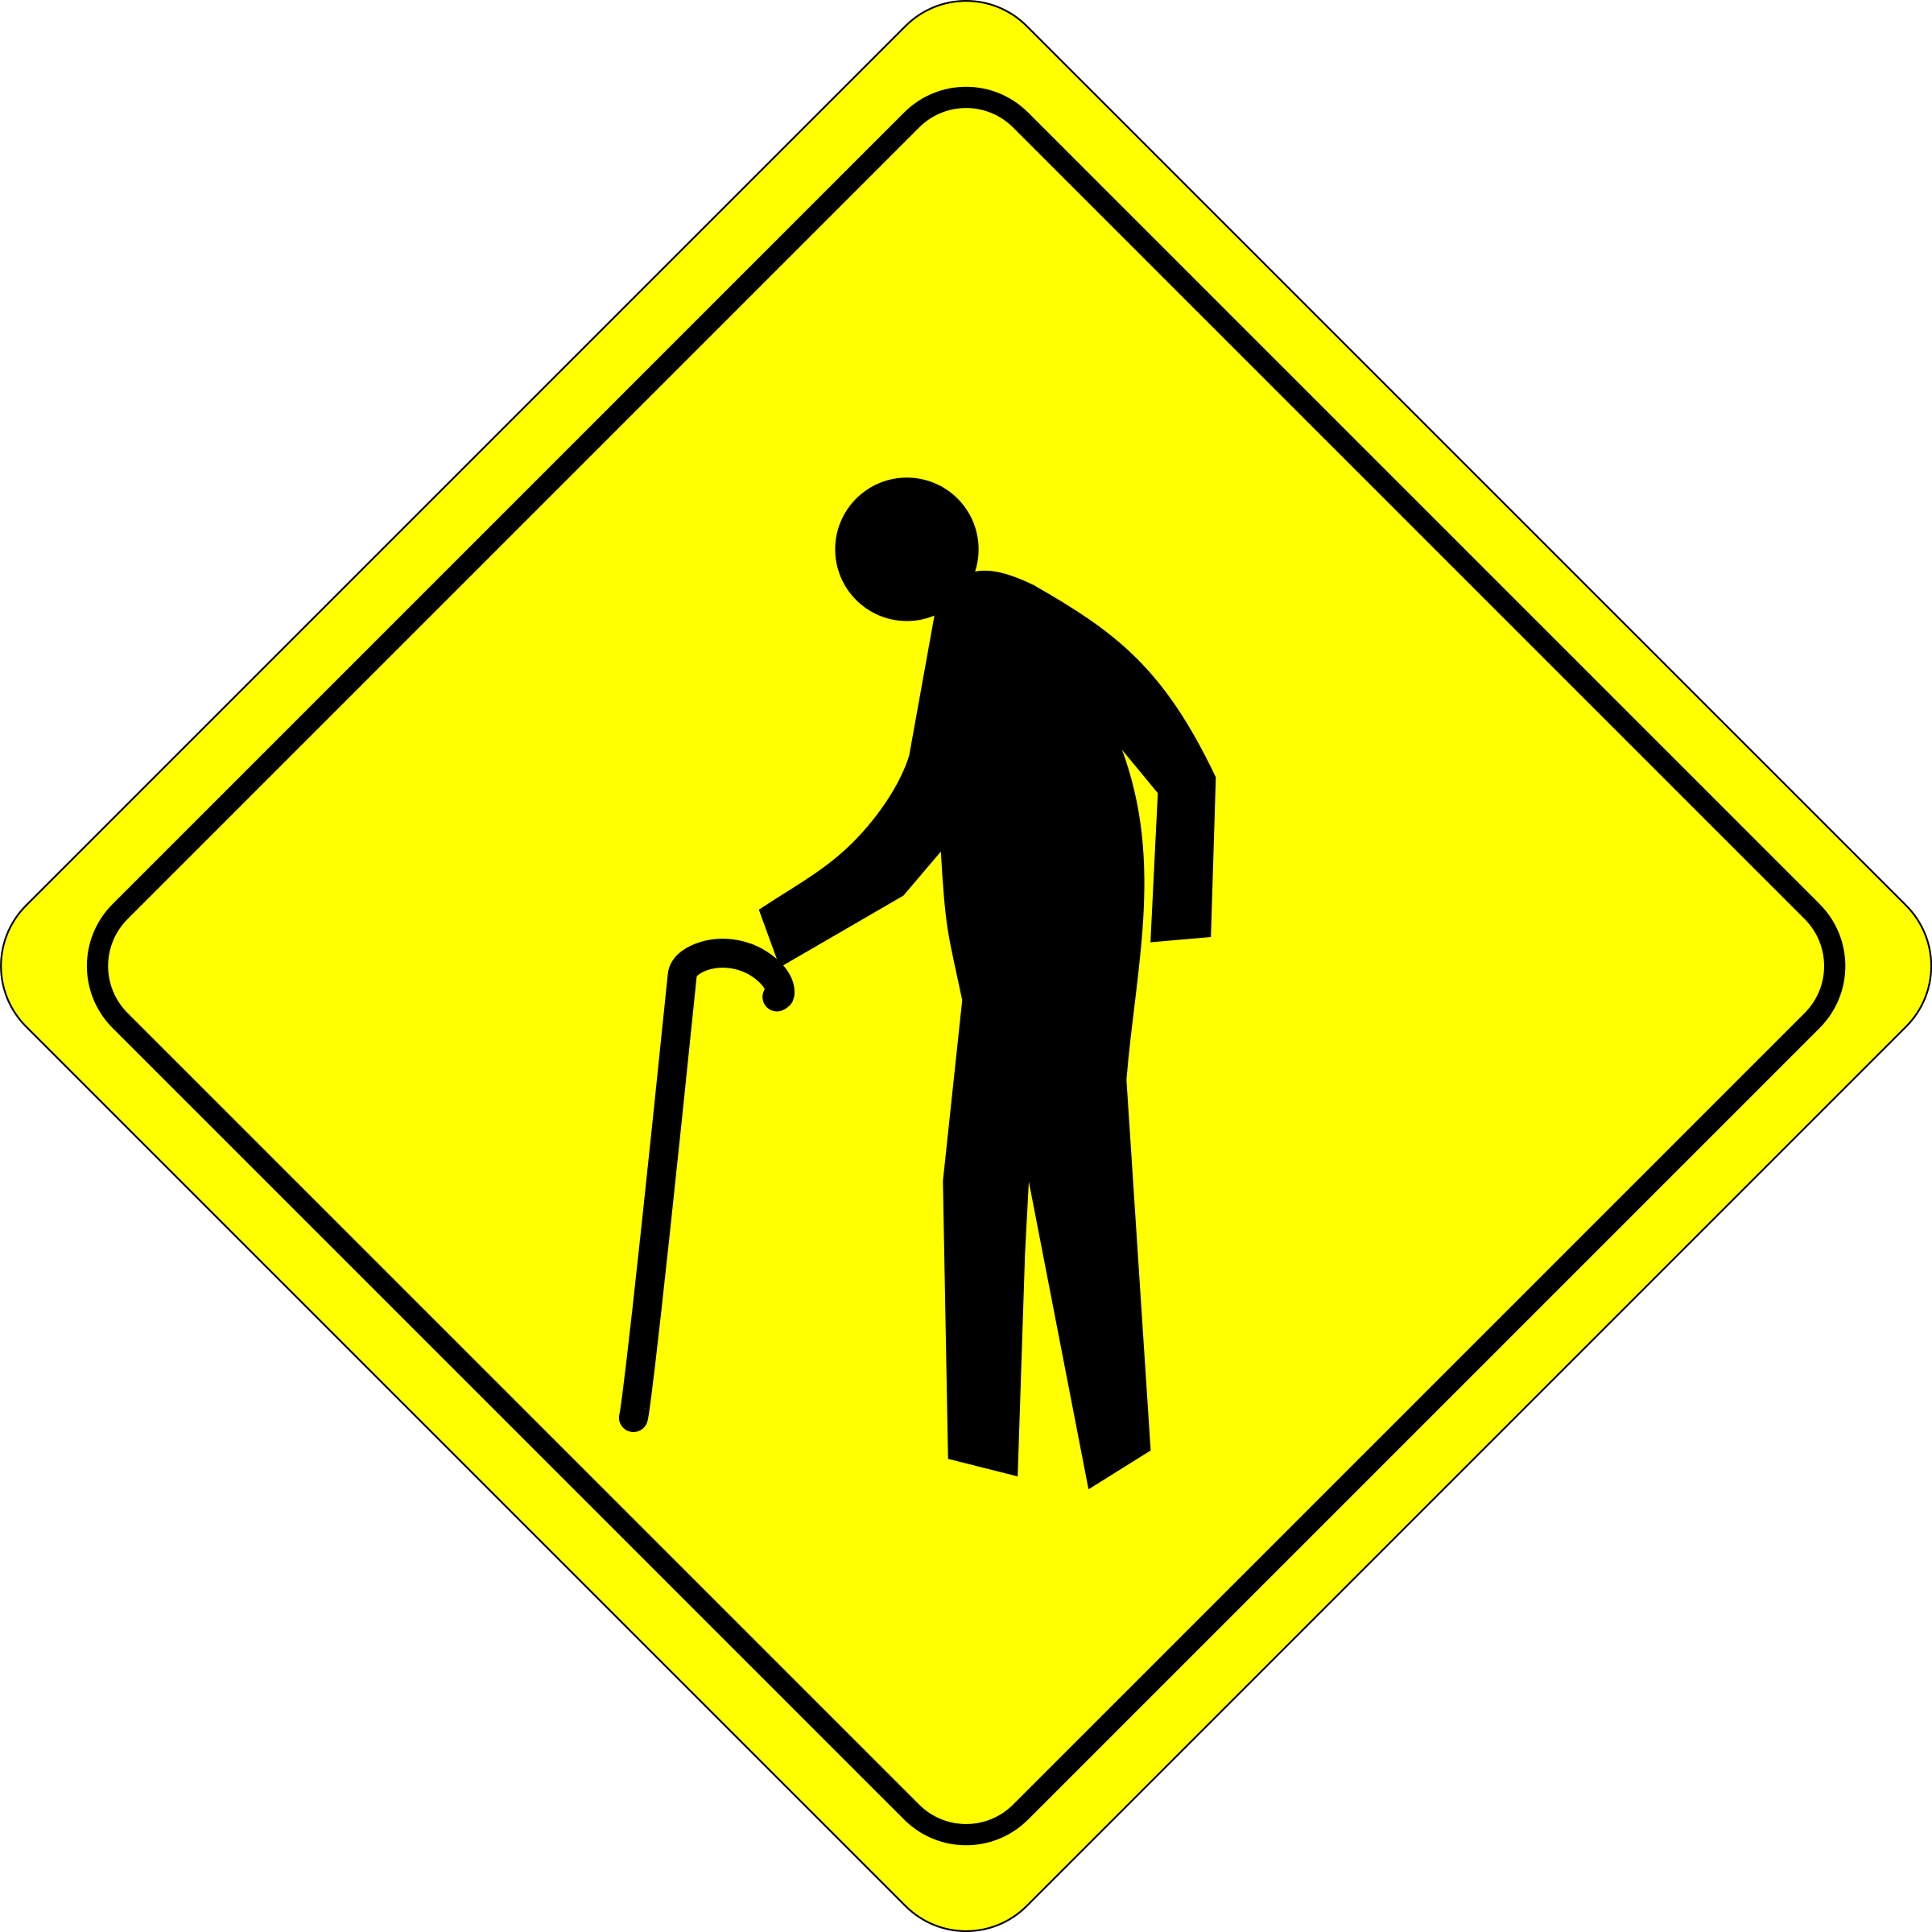 Clipart road junction. Caution old dude crossing